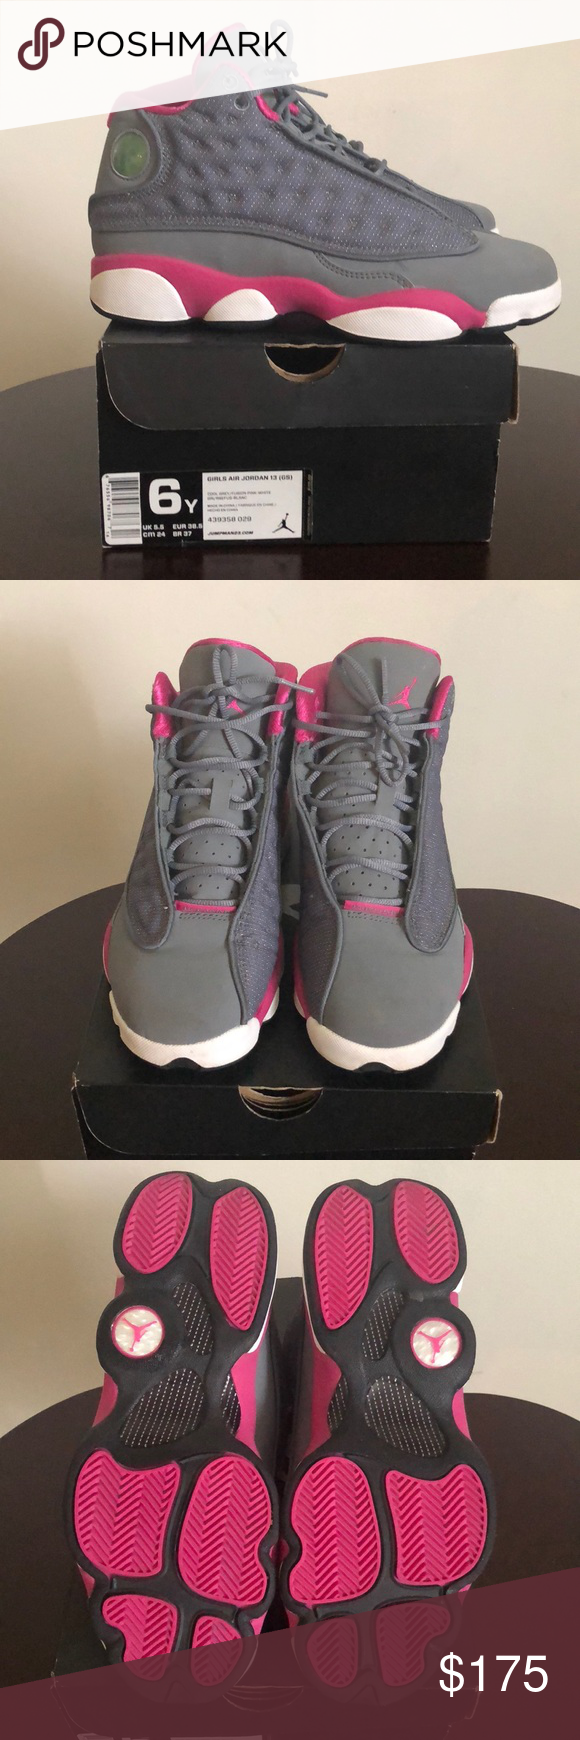 competitive price e075e c2530 Girls Jordan Retro 13 NWOT youth size 6/ is a women size 8 ...